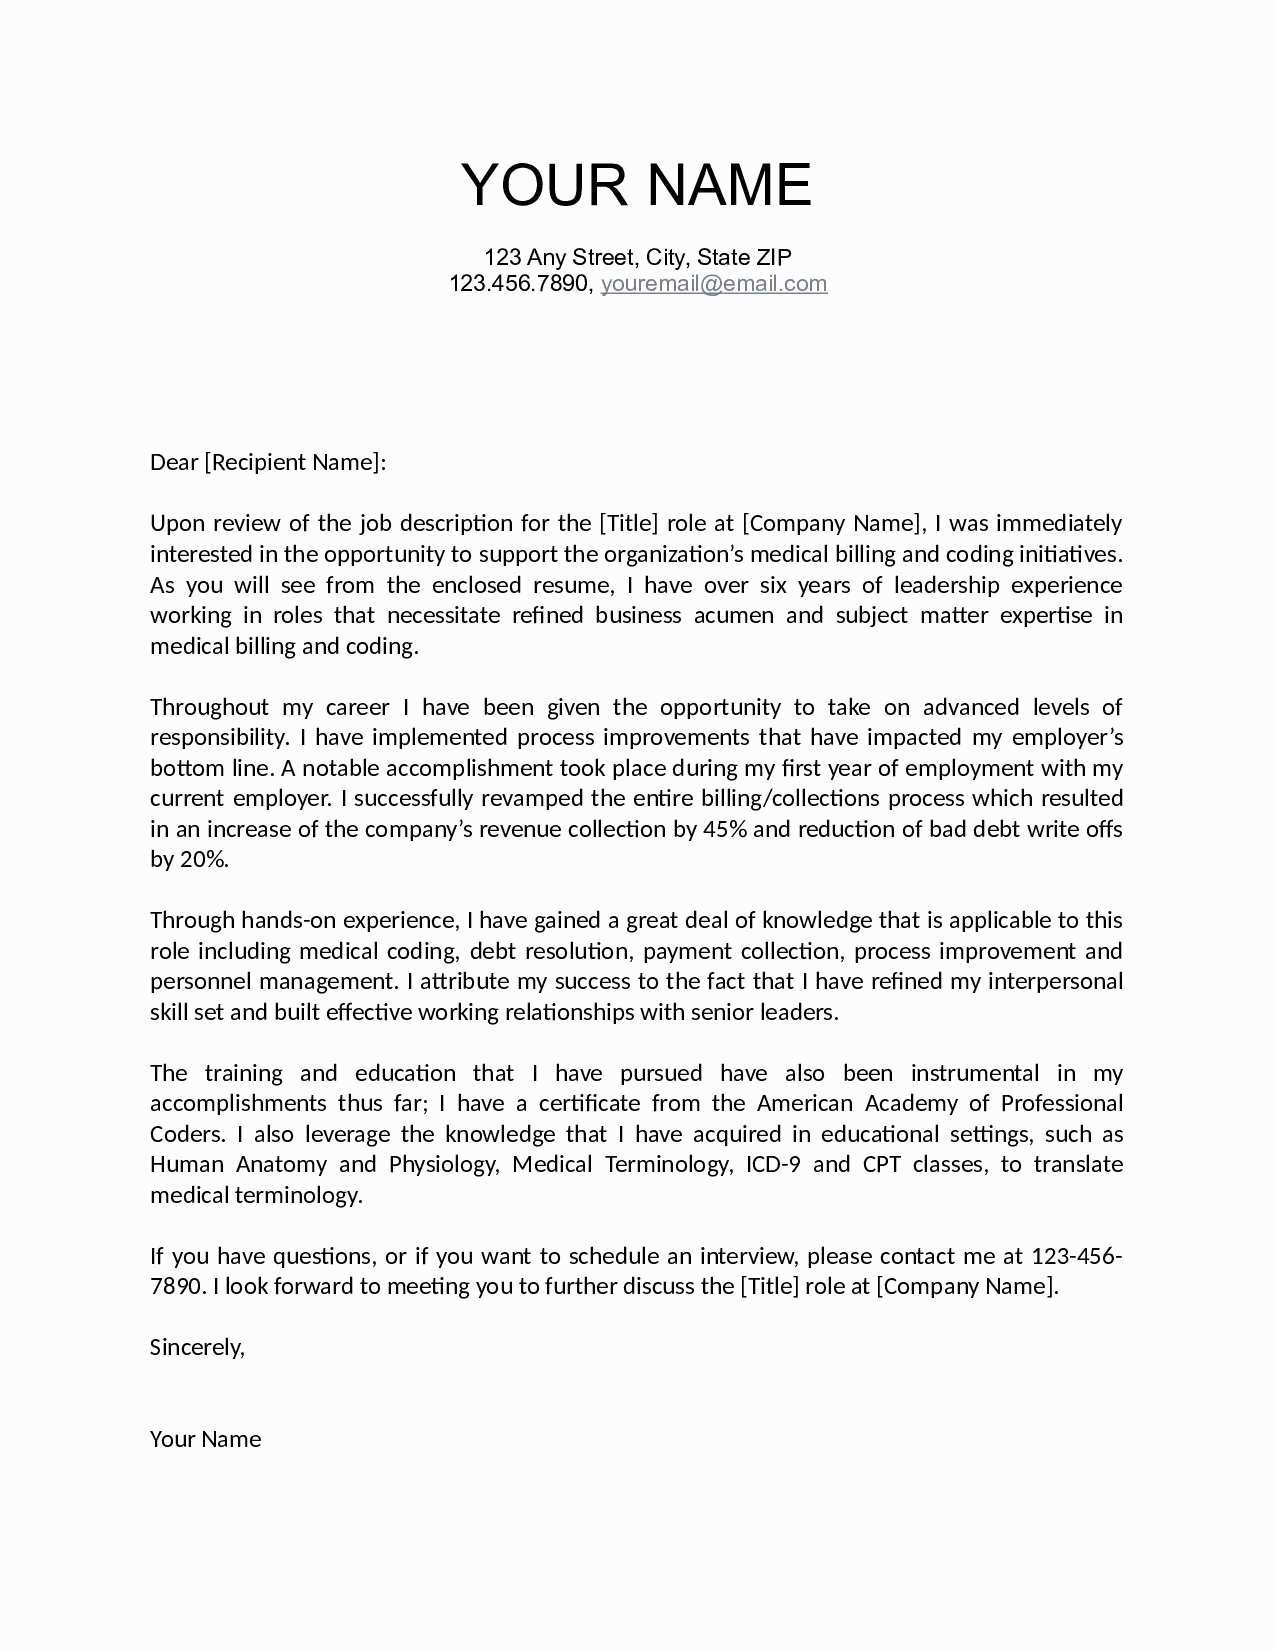 Public Record Removal Letter Template - Cover Letter for Oil and Gas Job Save Lovely Job Fer Letter Template